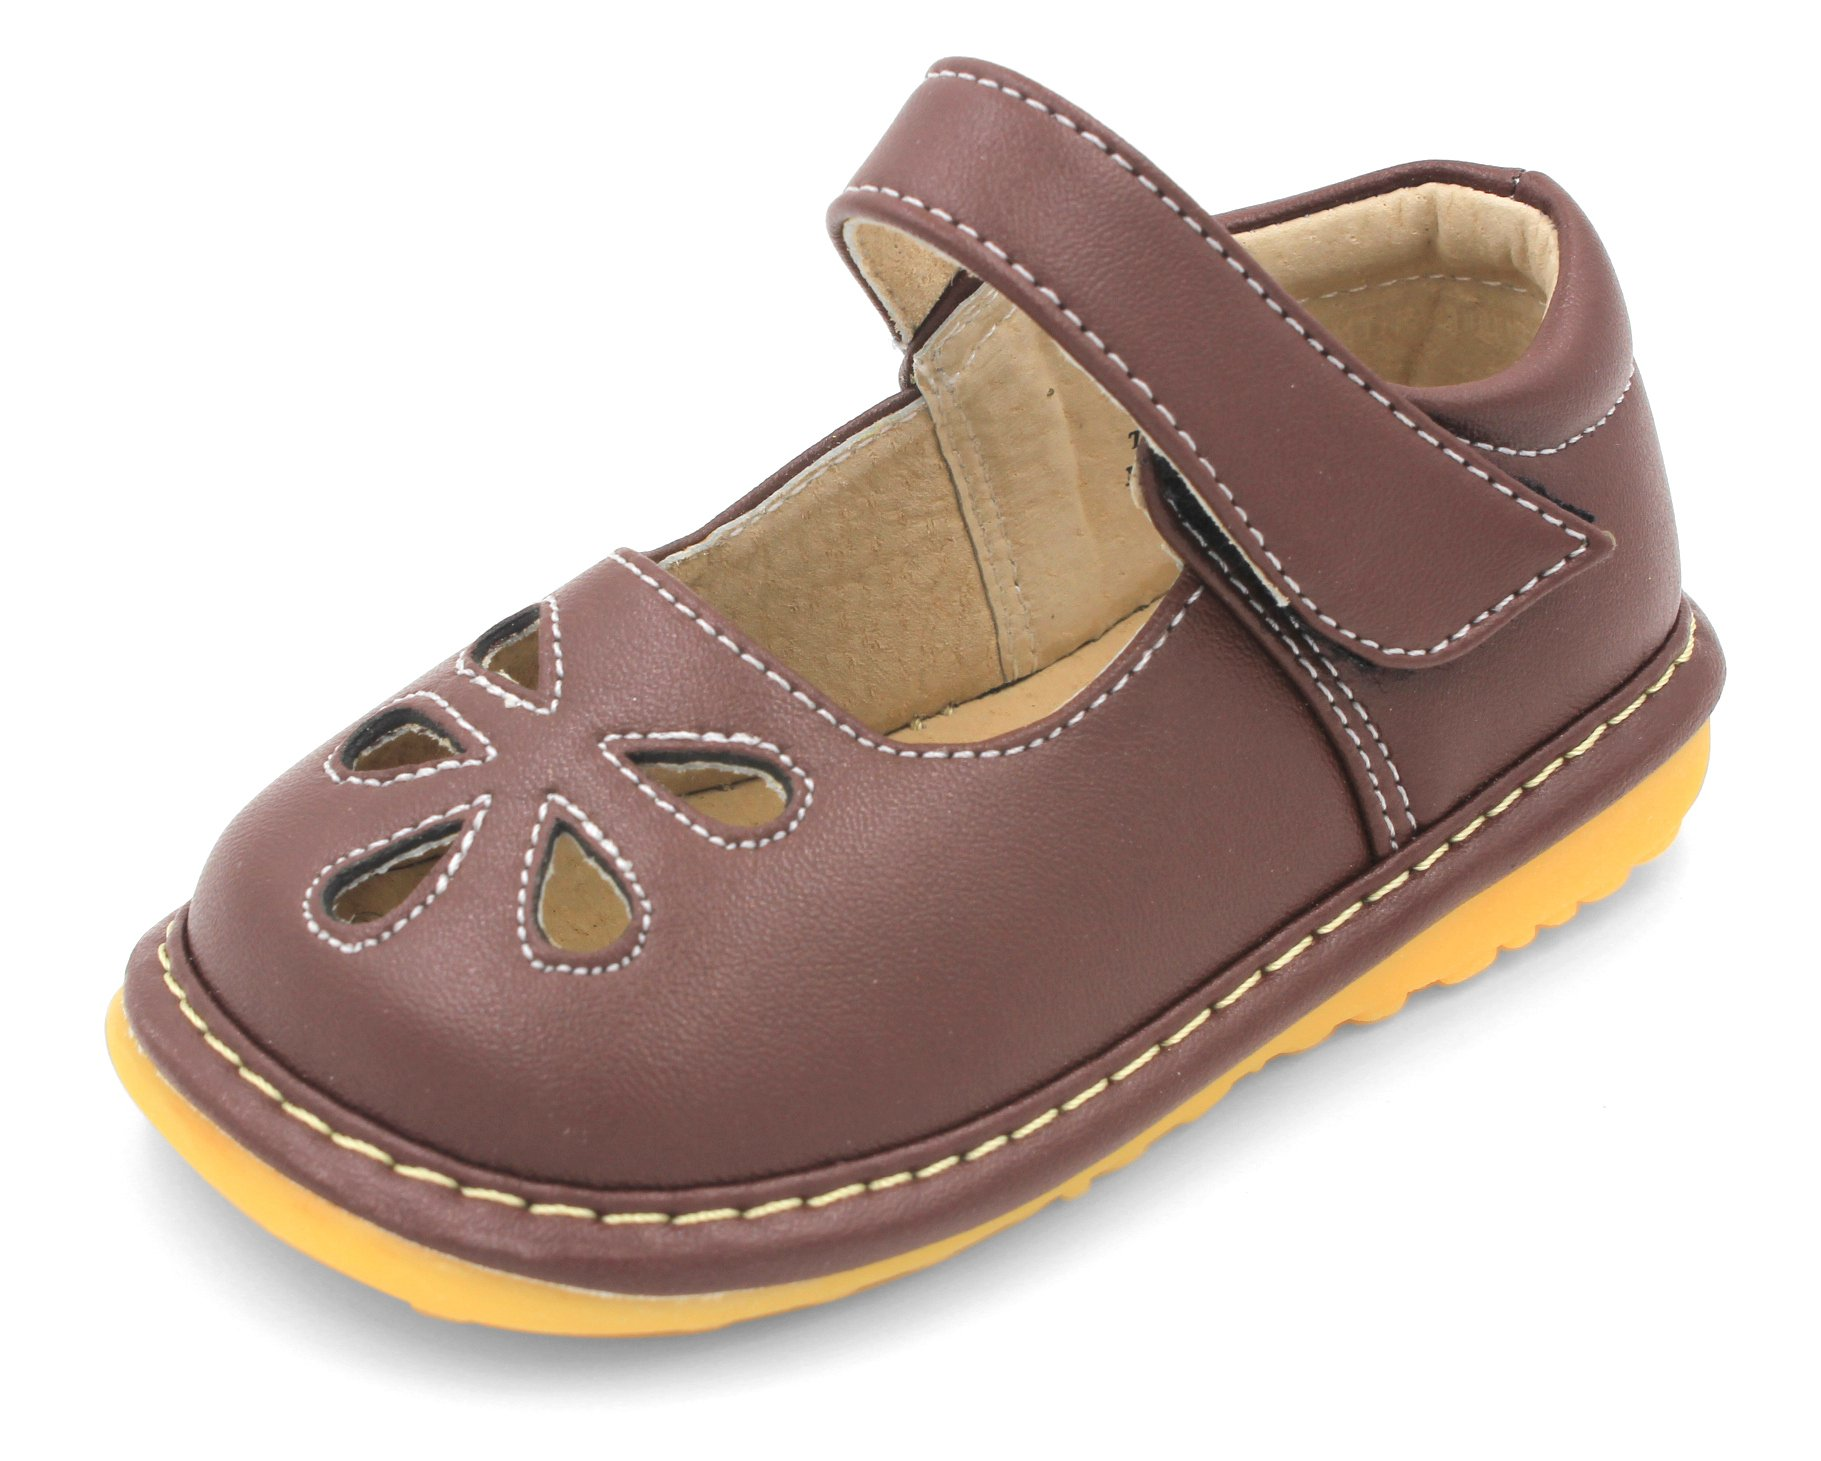 Little Mae's Boutique Toddler Shoes   Squeaky Brown Flower Punch Mary Jane Toddler Girl Shoes (6)